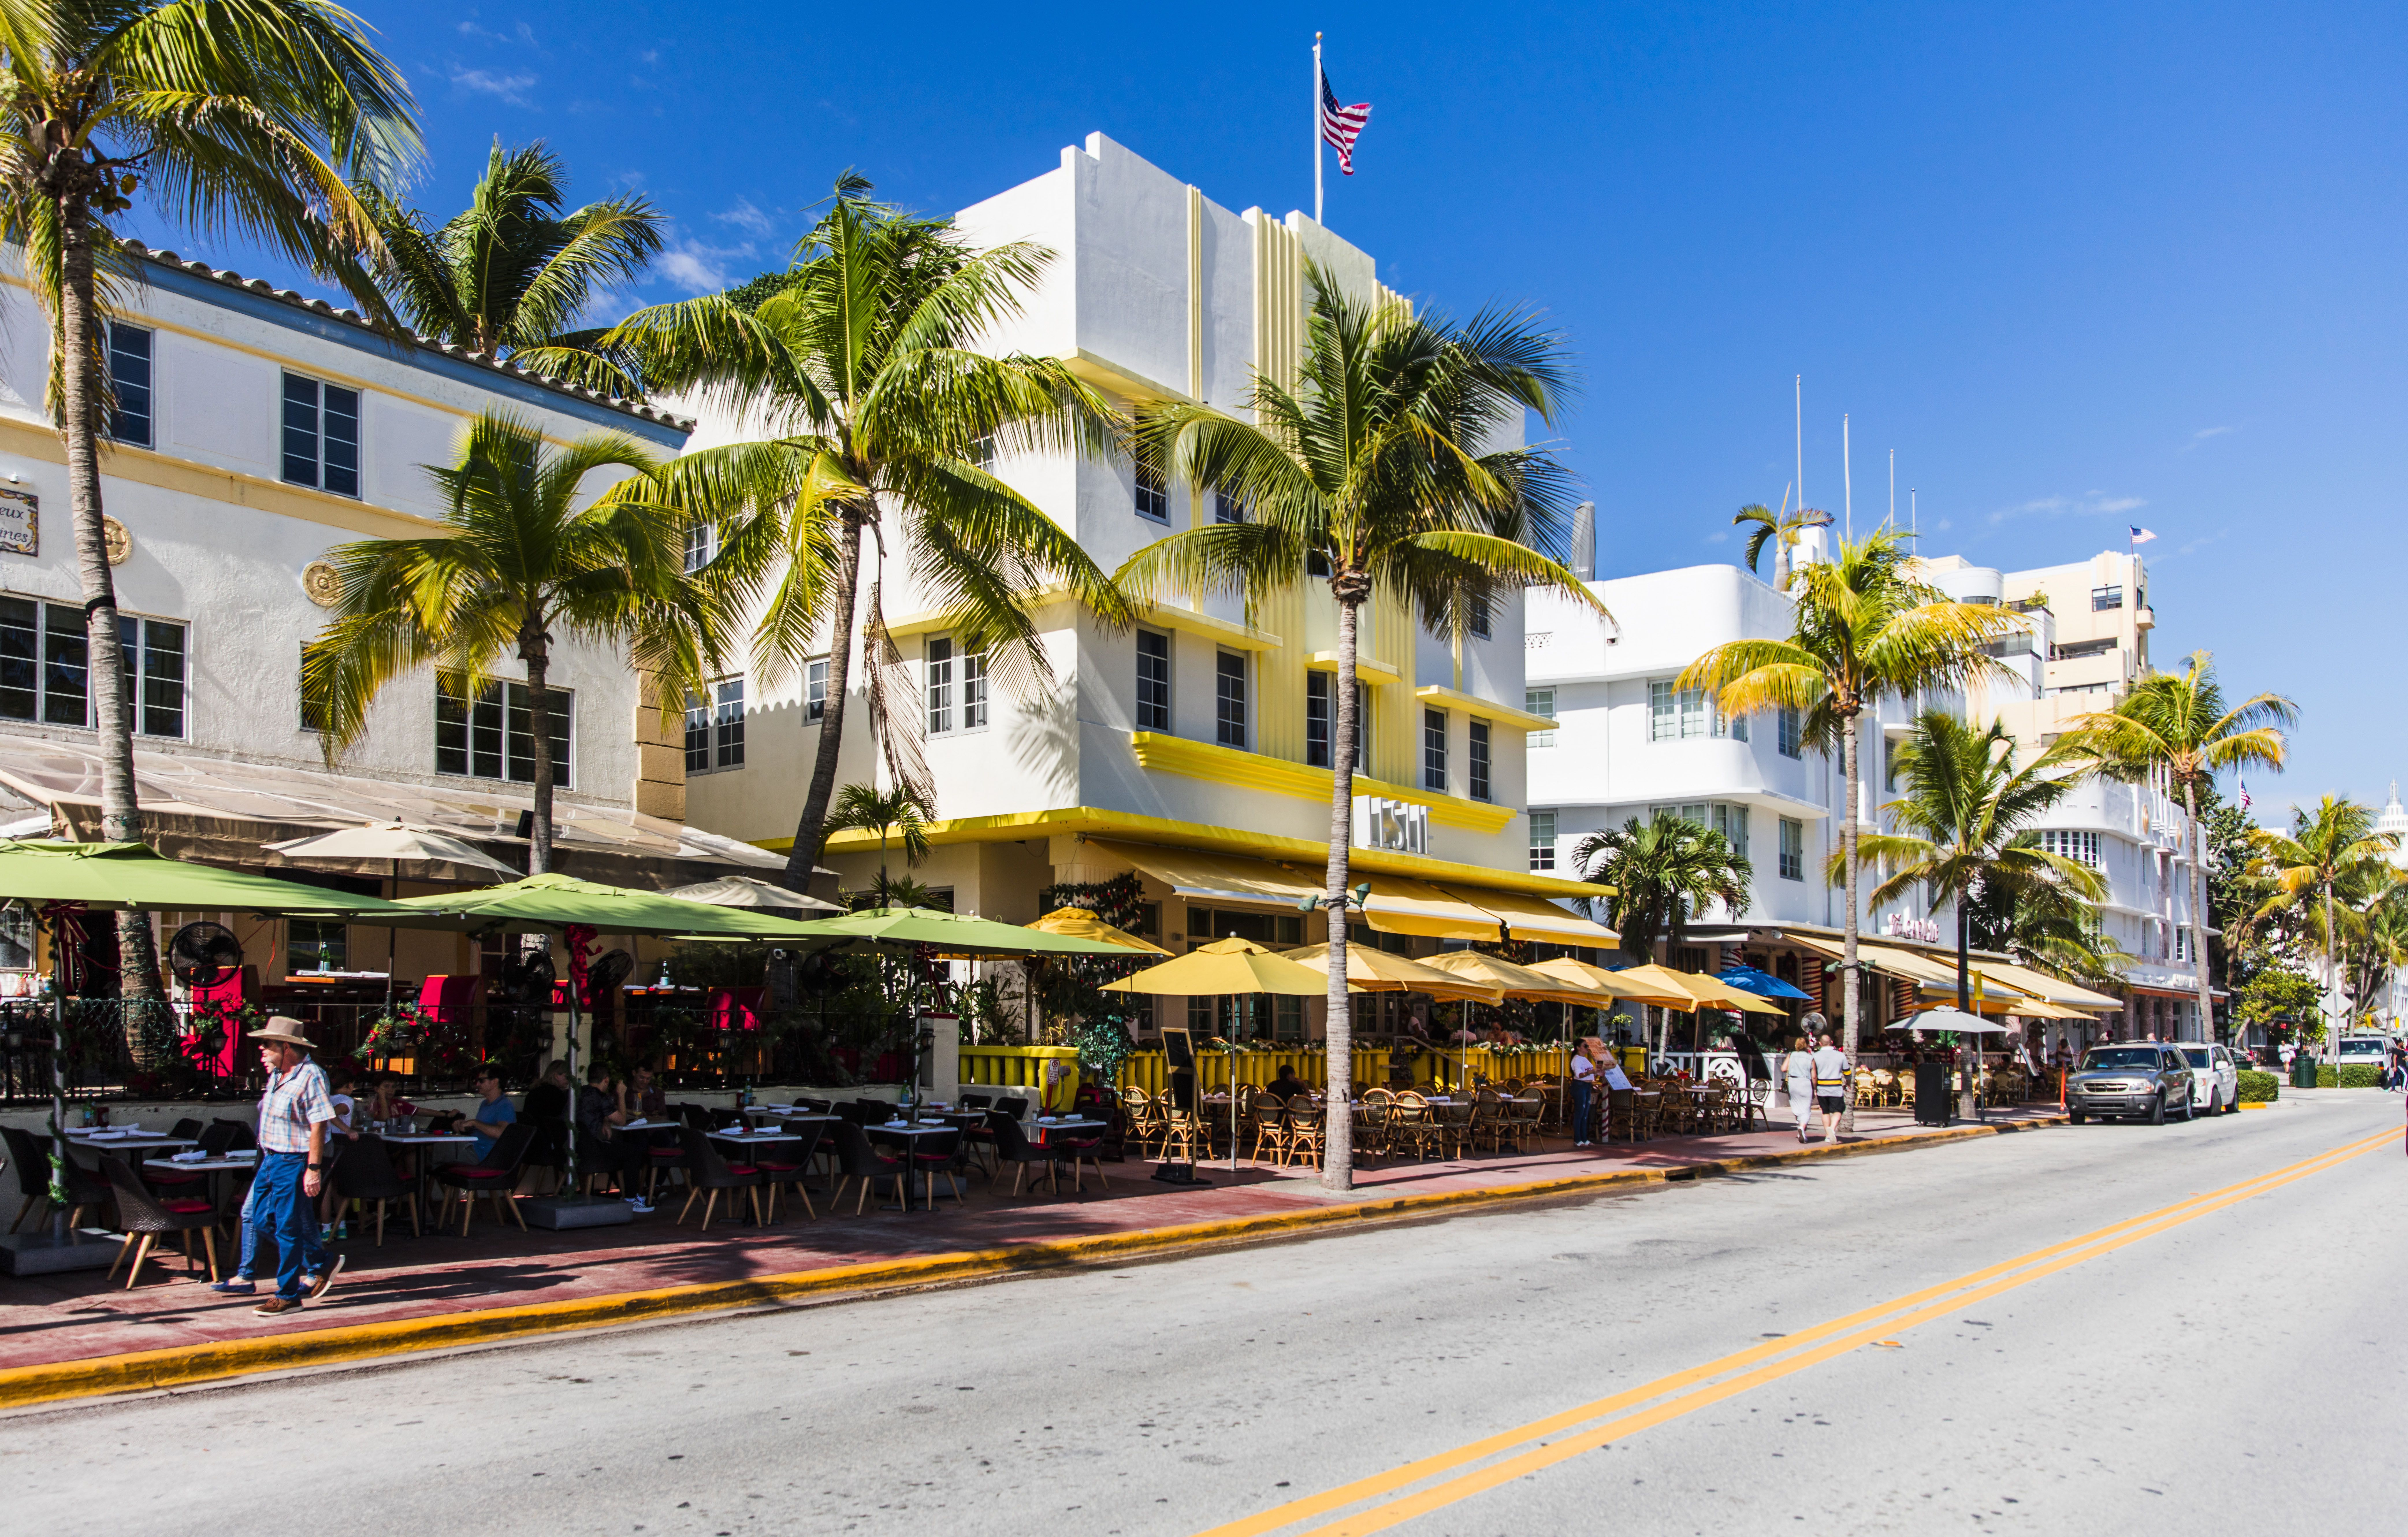 Street with art deco architecture buildings in South Beach Miami